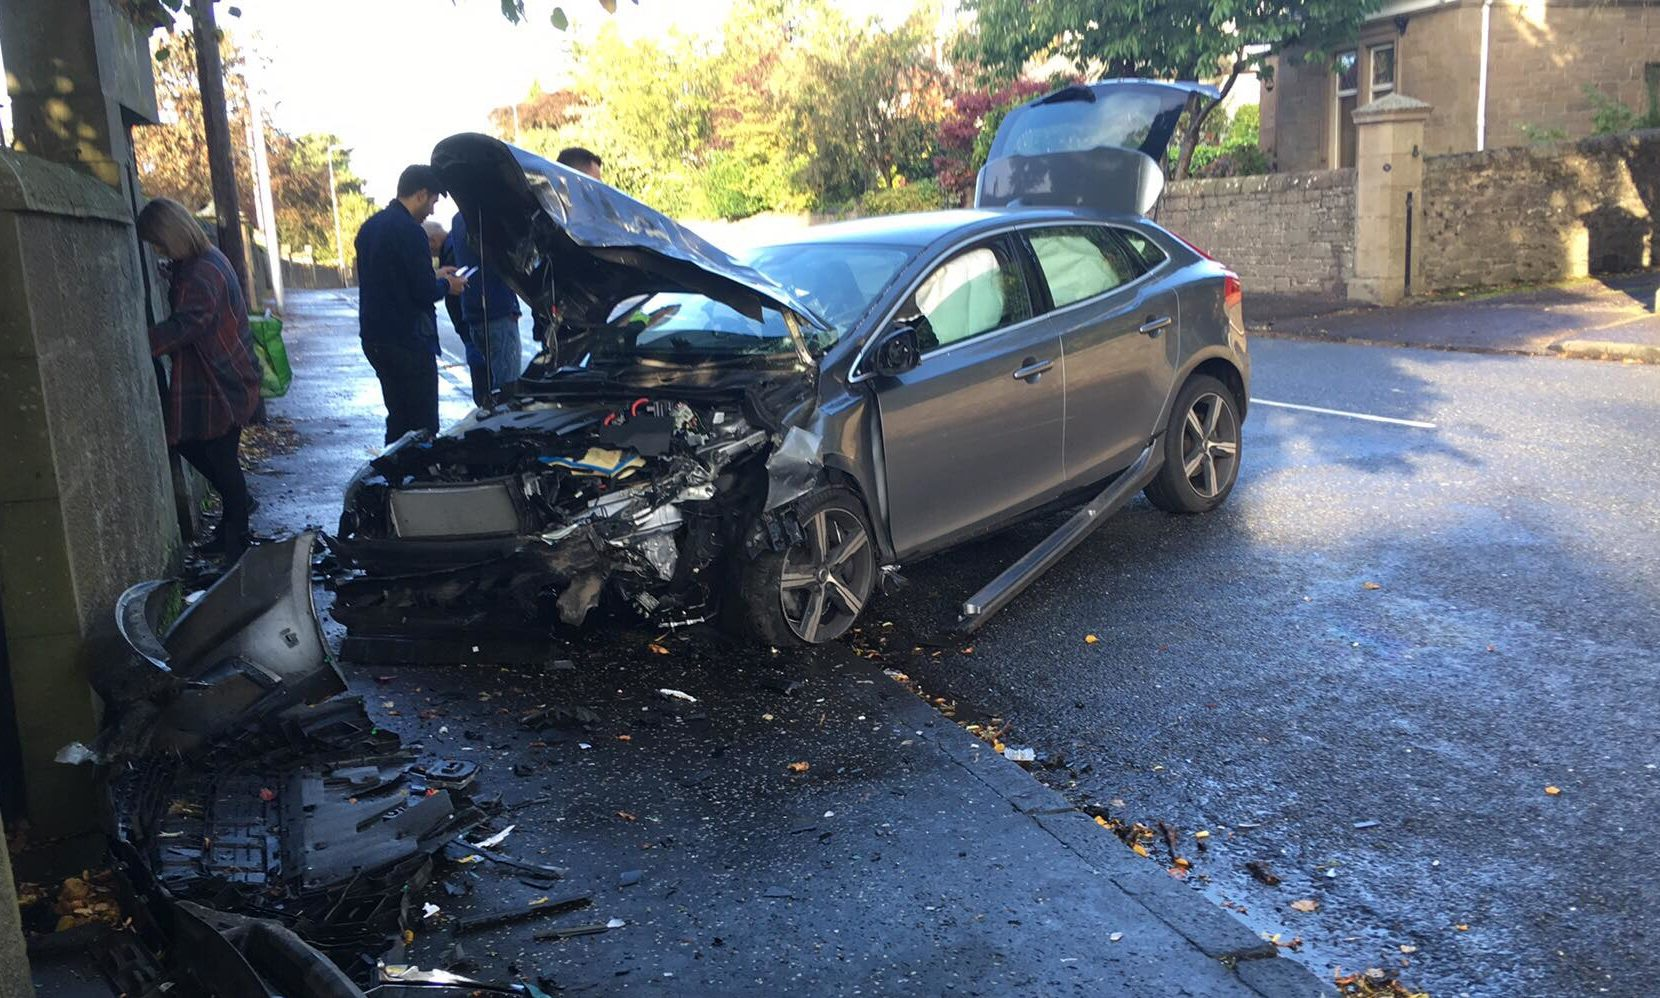 One of the vehicles involved in the collision on Perth Road.